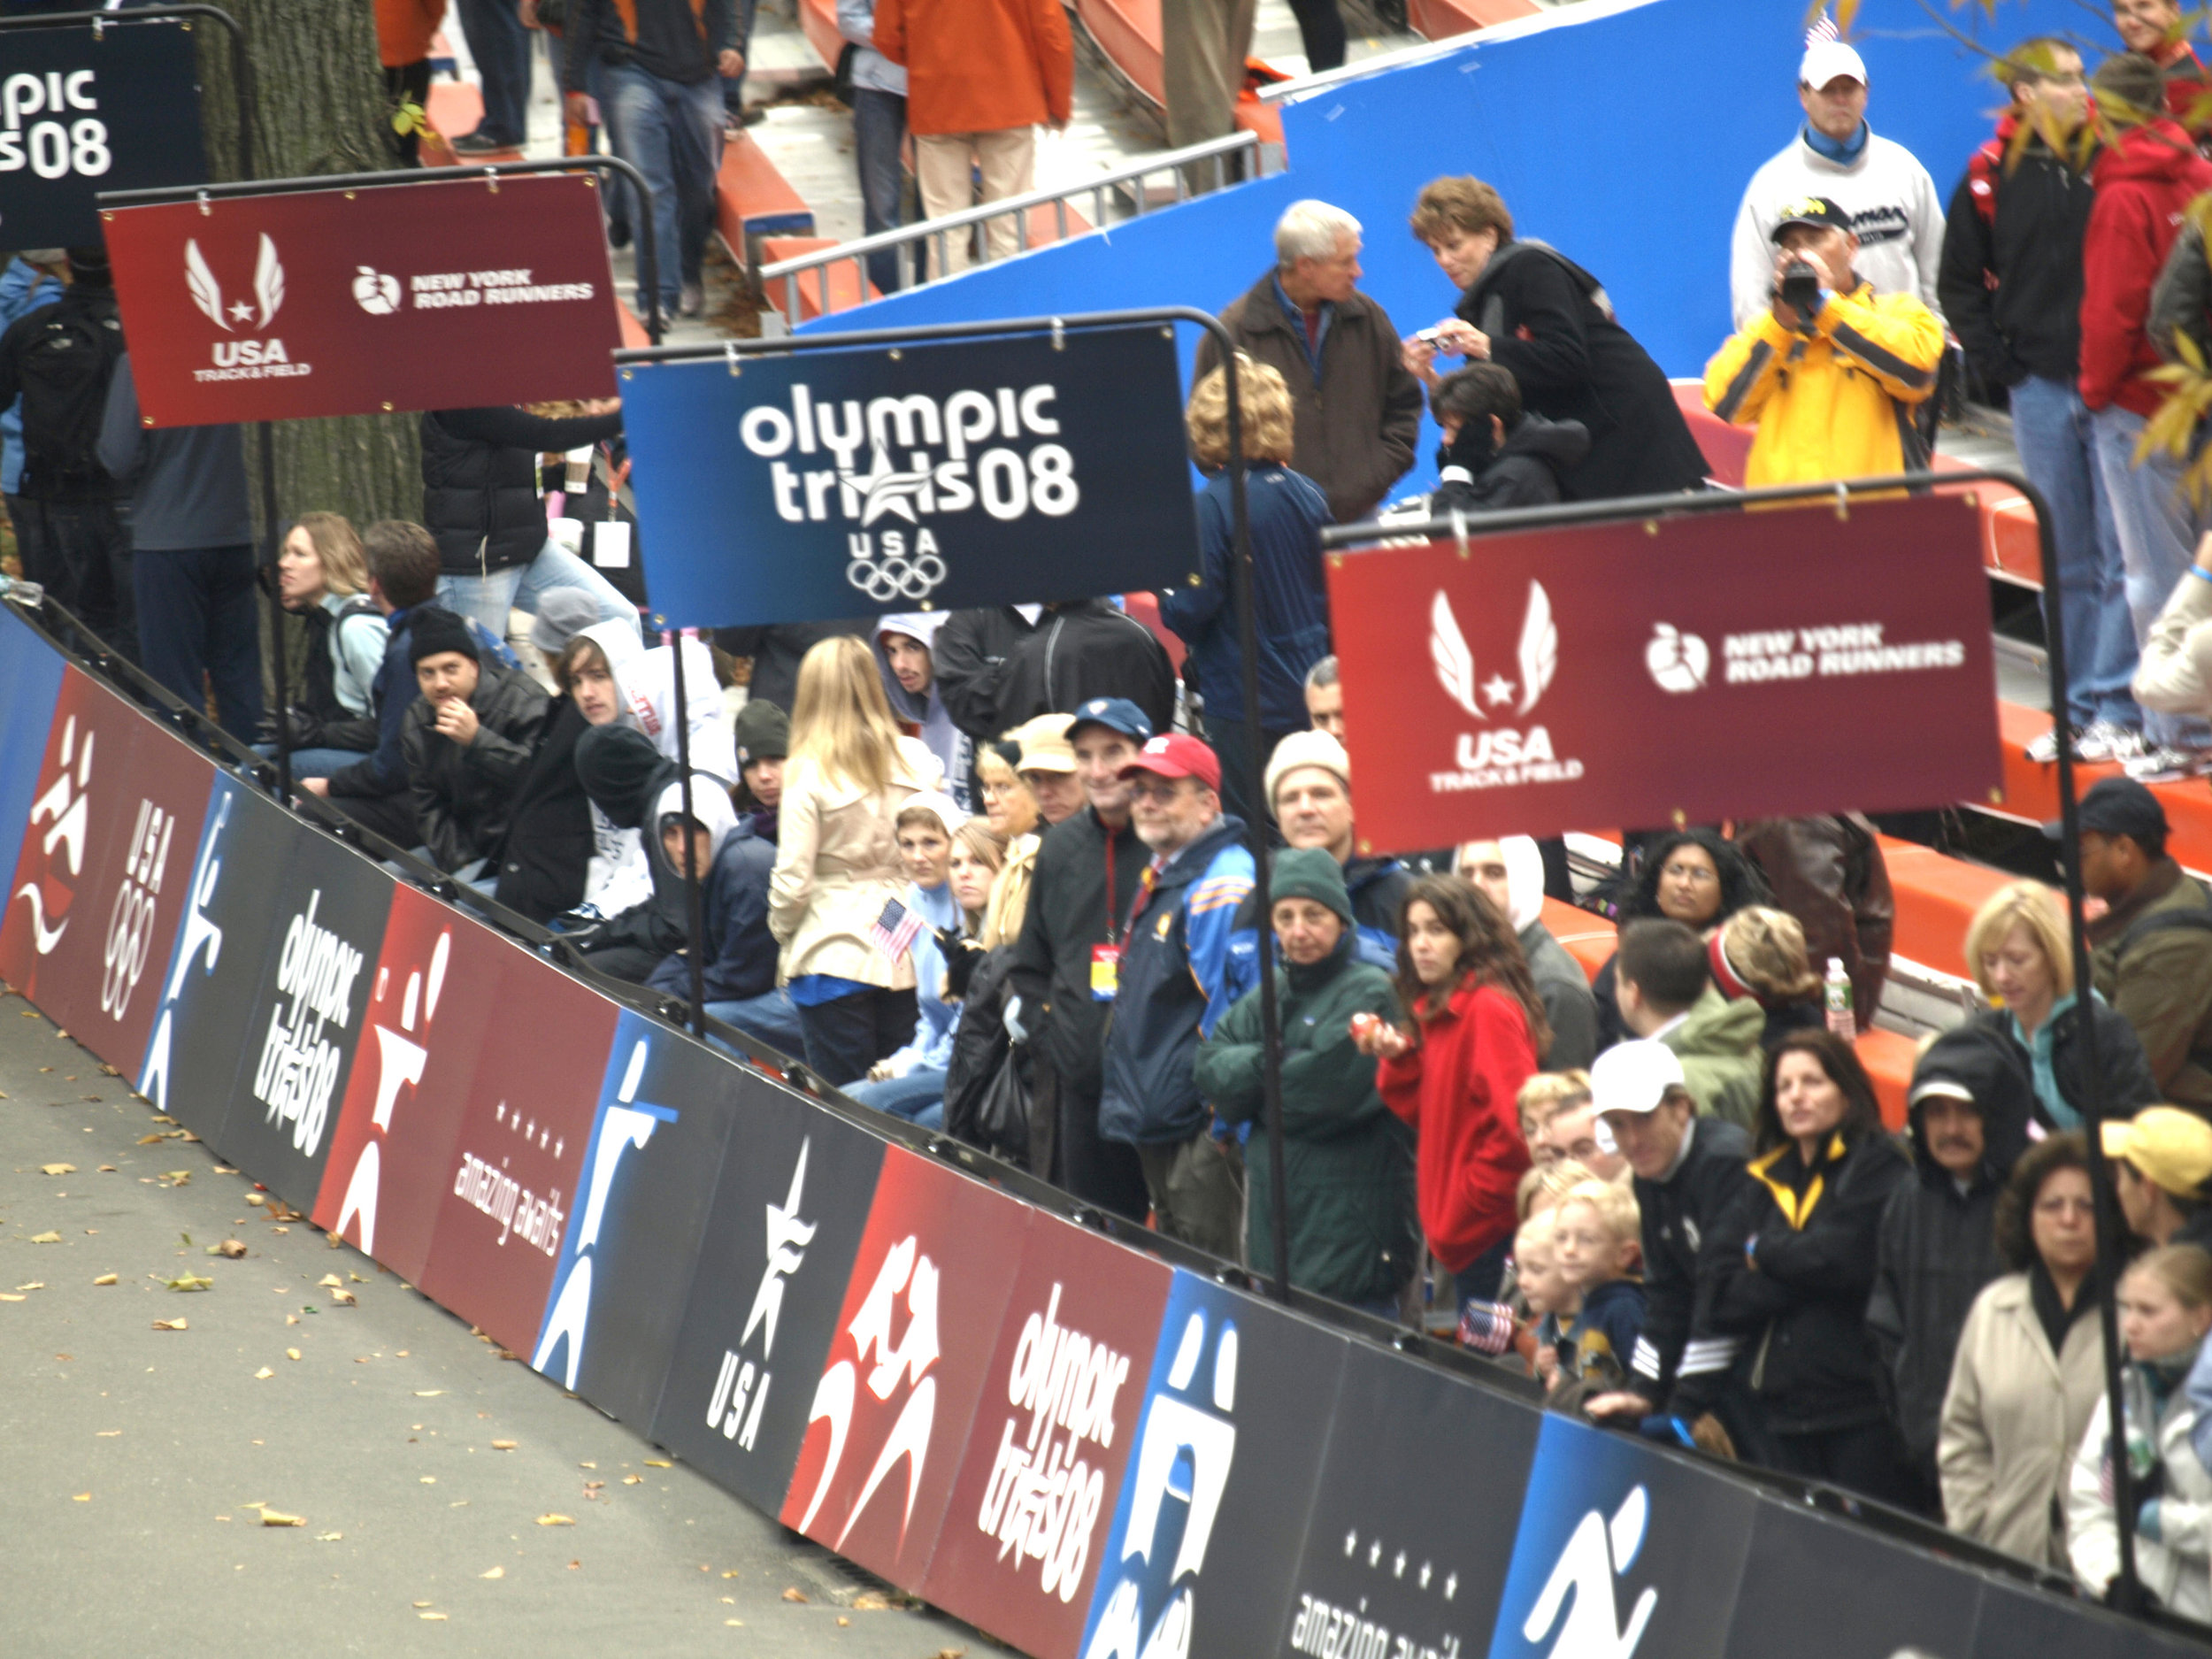 APCG_NYCOlympicTrials2.JPG